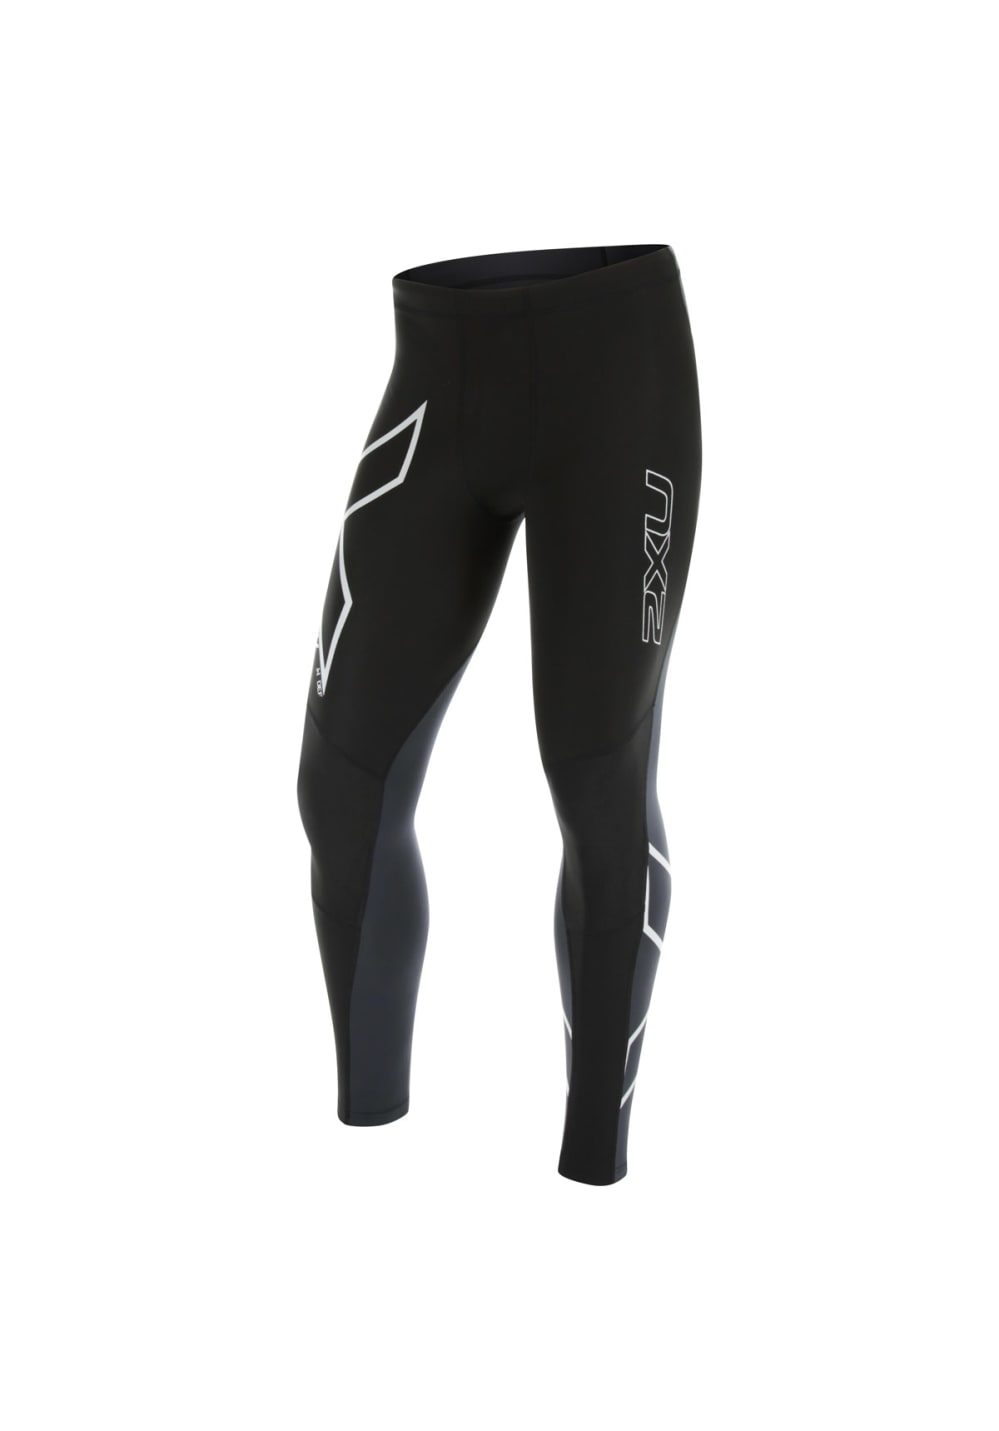 2XU G:2 Wind Defence Thermal Compression - Kompression für Herren - Schwarz